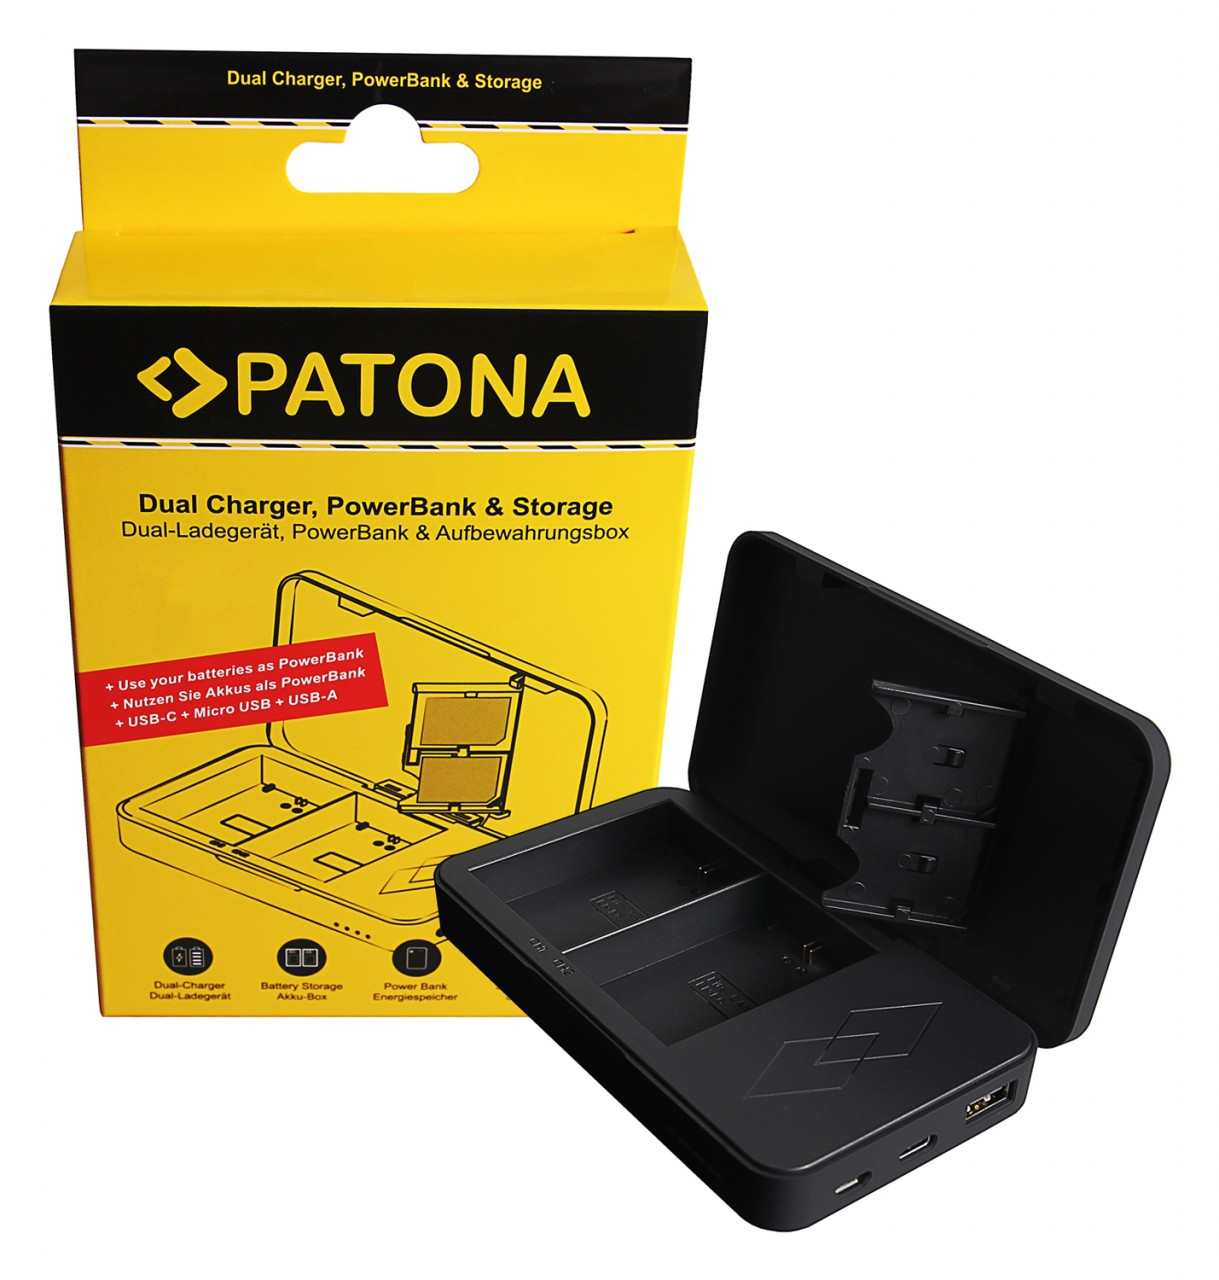 PATONA Dual charger with Powerbank function and memory card